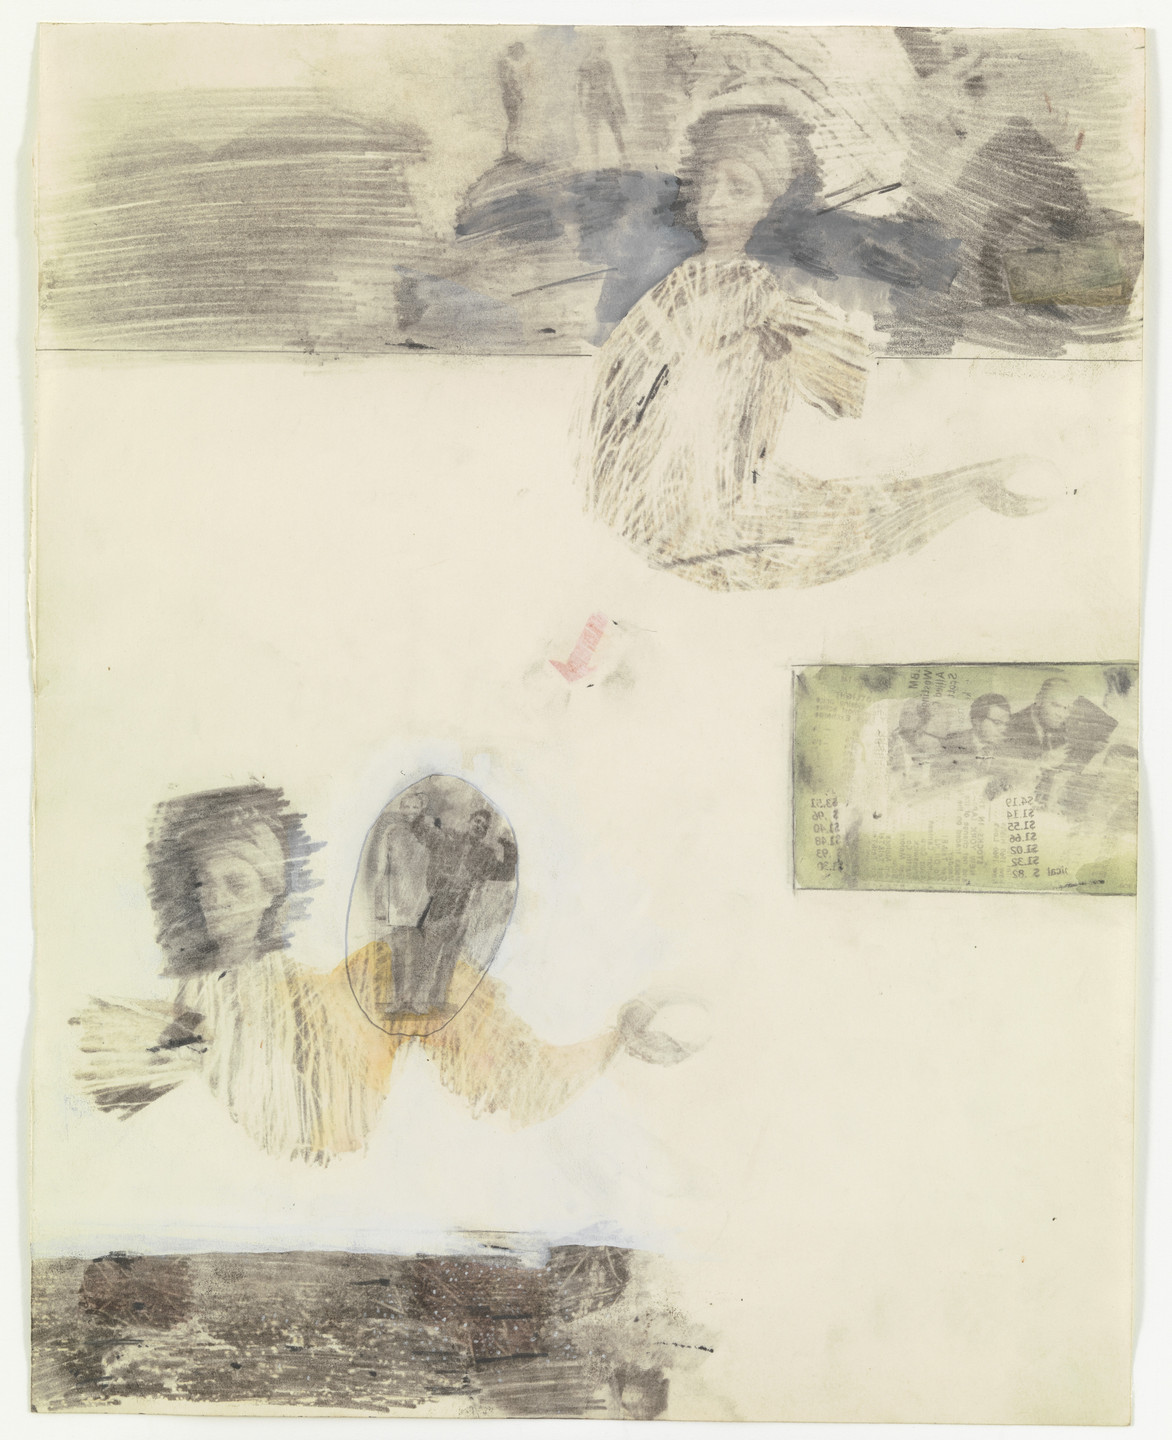 Robert Rauschenberg. Canto XVII: Circle Seven, Round 3, The Violent Against Art, The Usurers, Geryon from the series Thirty-Four Illustrations from Dante's Inferno. (1959-60)